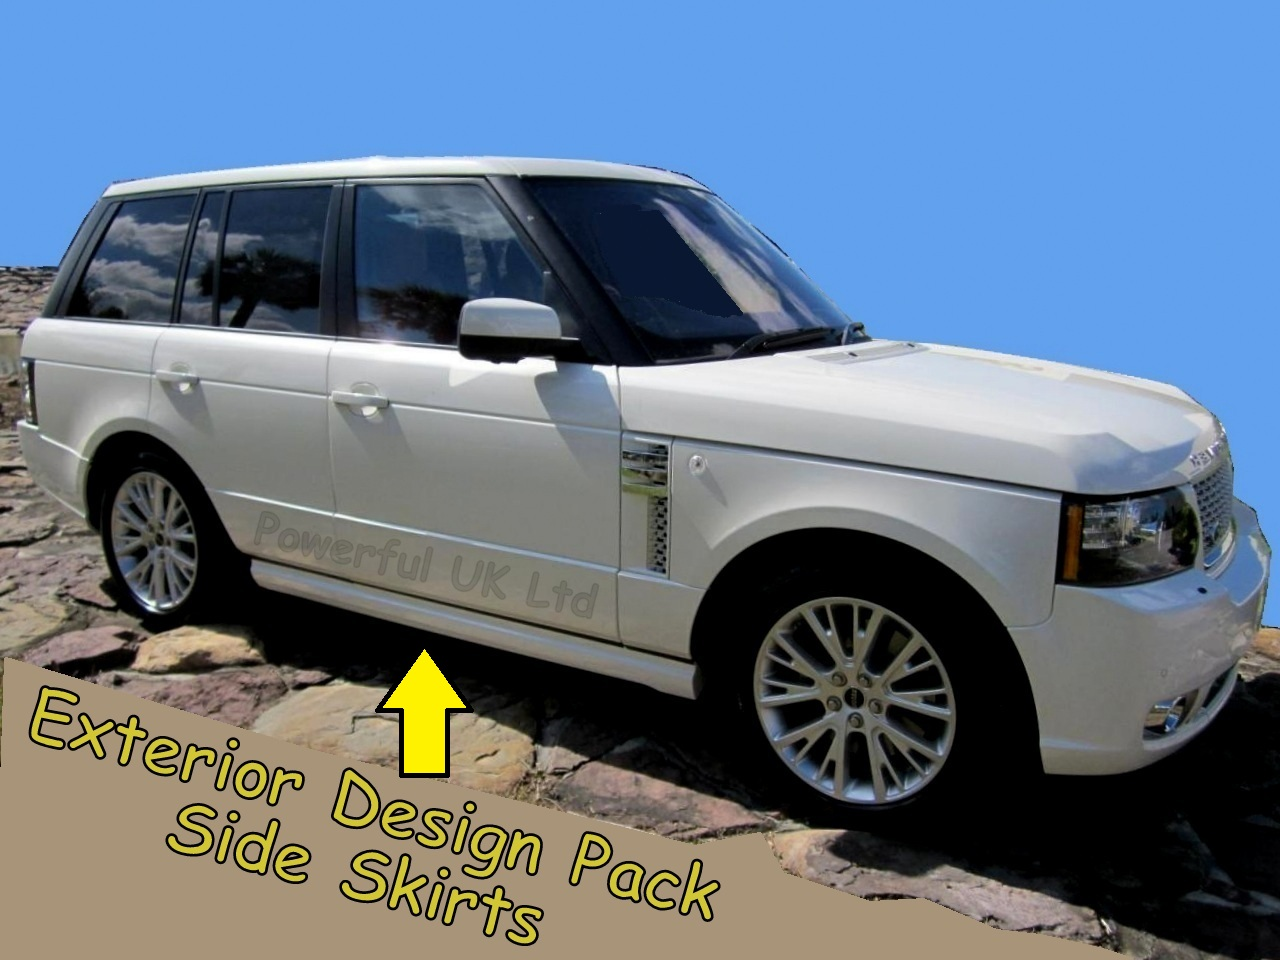 side skirts pair range rover l322 exterior design pack